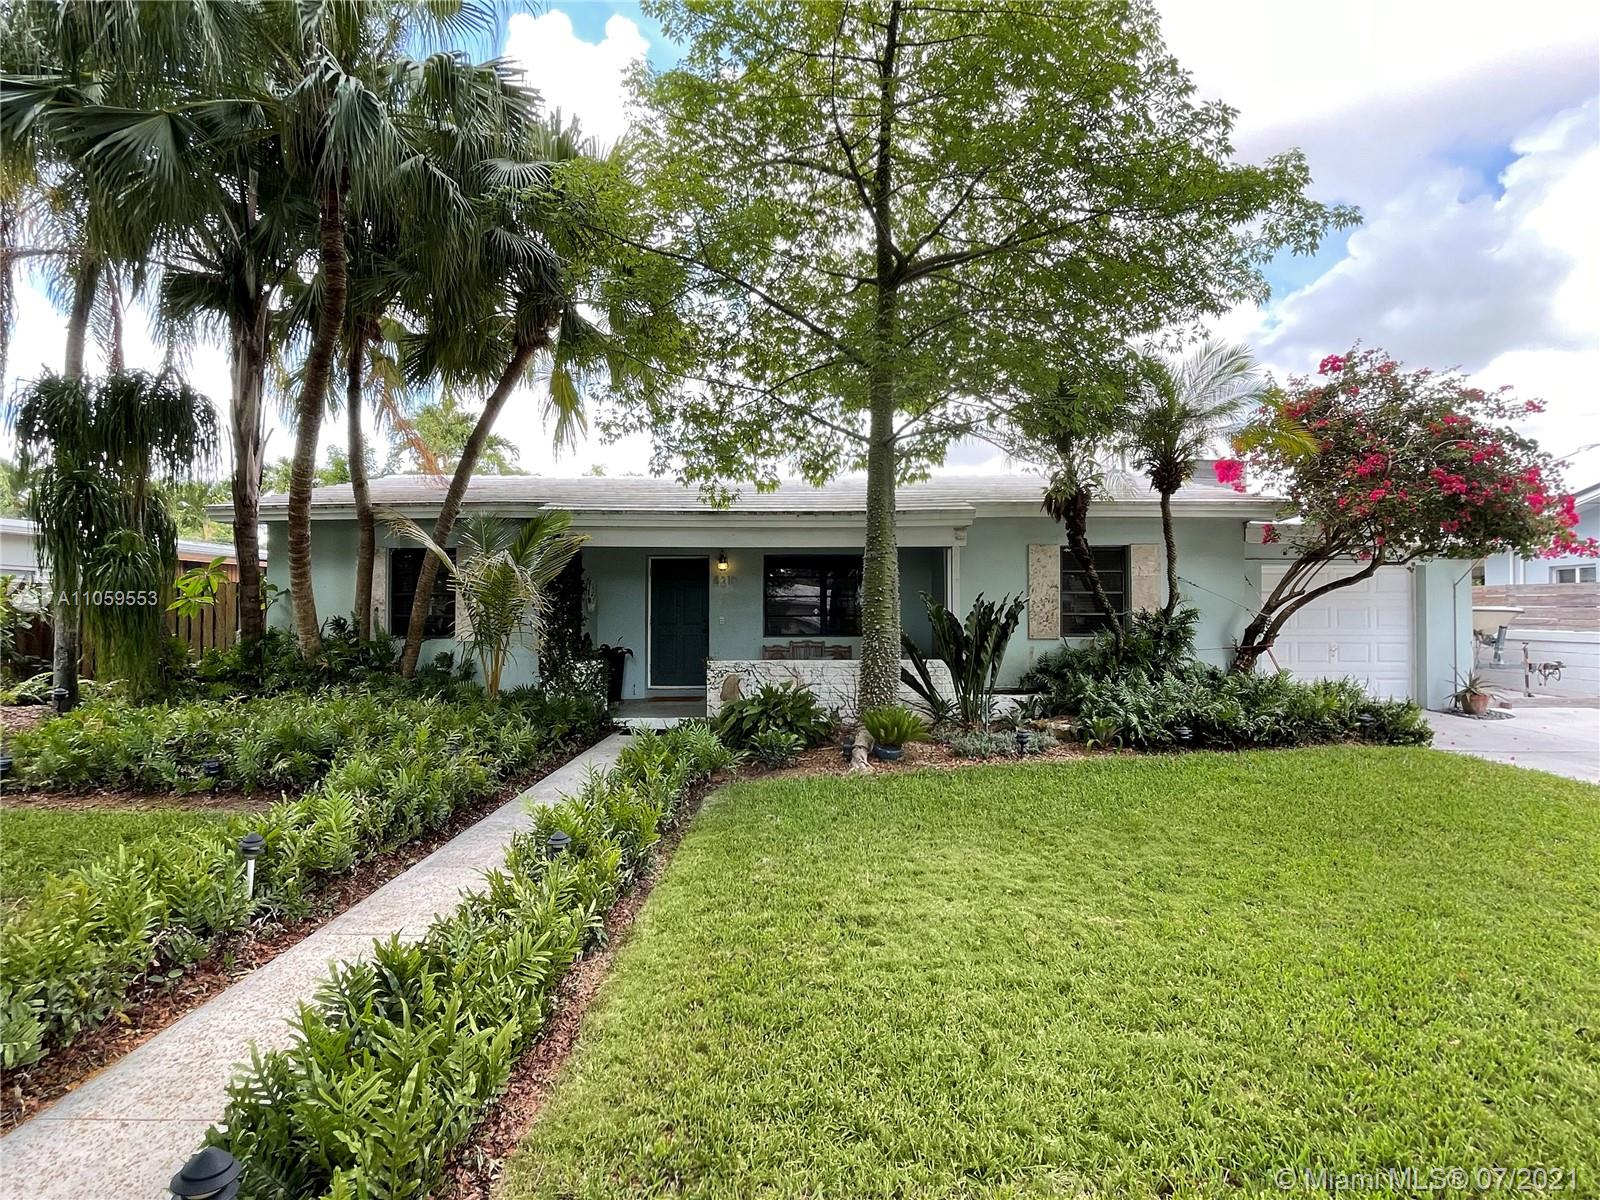 Gorgeous split plan 3/2 with spectacular outdoor living spaces. Located adjacent to South Miami and Coral Gables near best public and private schools, UM, shopping, restaurants, night life, parks, transportation and hospitals. Neighborhood is private, secluded and friendly. Sidewalks and large shade trees. Wood floors over terrazzo, High ceilings, Gas range, Electric oven, Florida room, Beautiful large pool, Stone pool deck, Natural wood elevated deck, Outside bar. Magnificent, lush landscaping with mature native trees and flowering plants.  Side yards have paved small boat storage and elevated kayak storage. Move in tomorrow and enjoy or add your personal touches. This home has a wonderful energy that will fit your Florida lifestyle. It is a special opportunity that will not last.